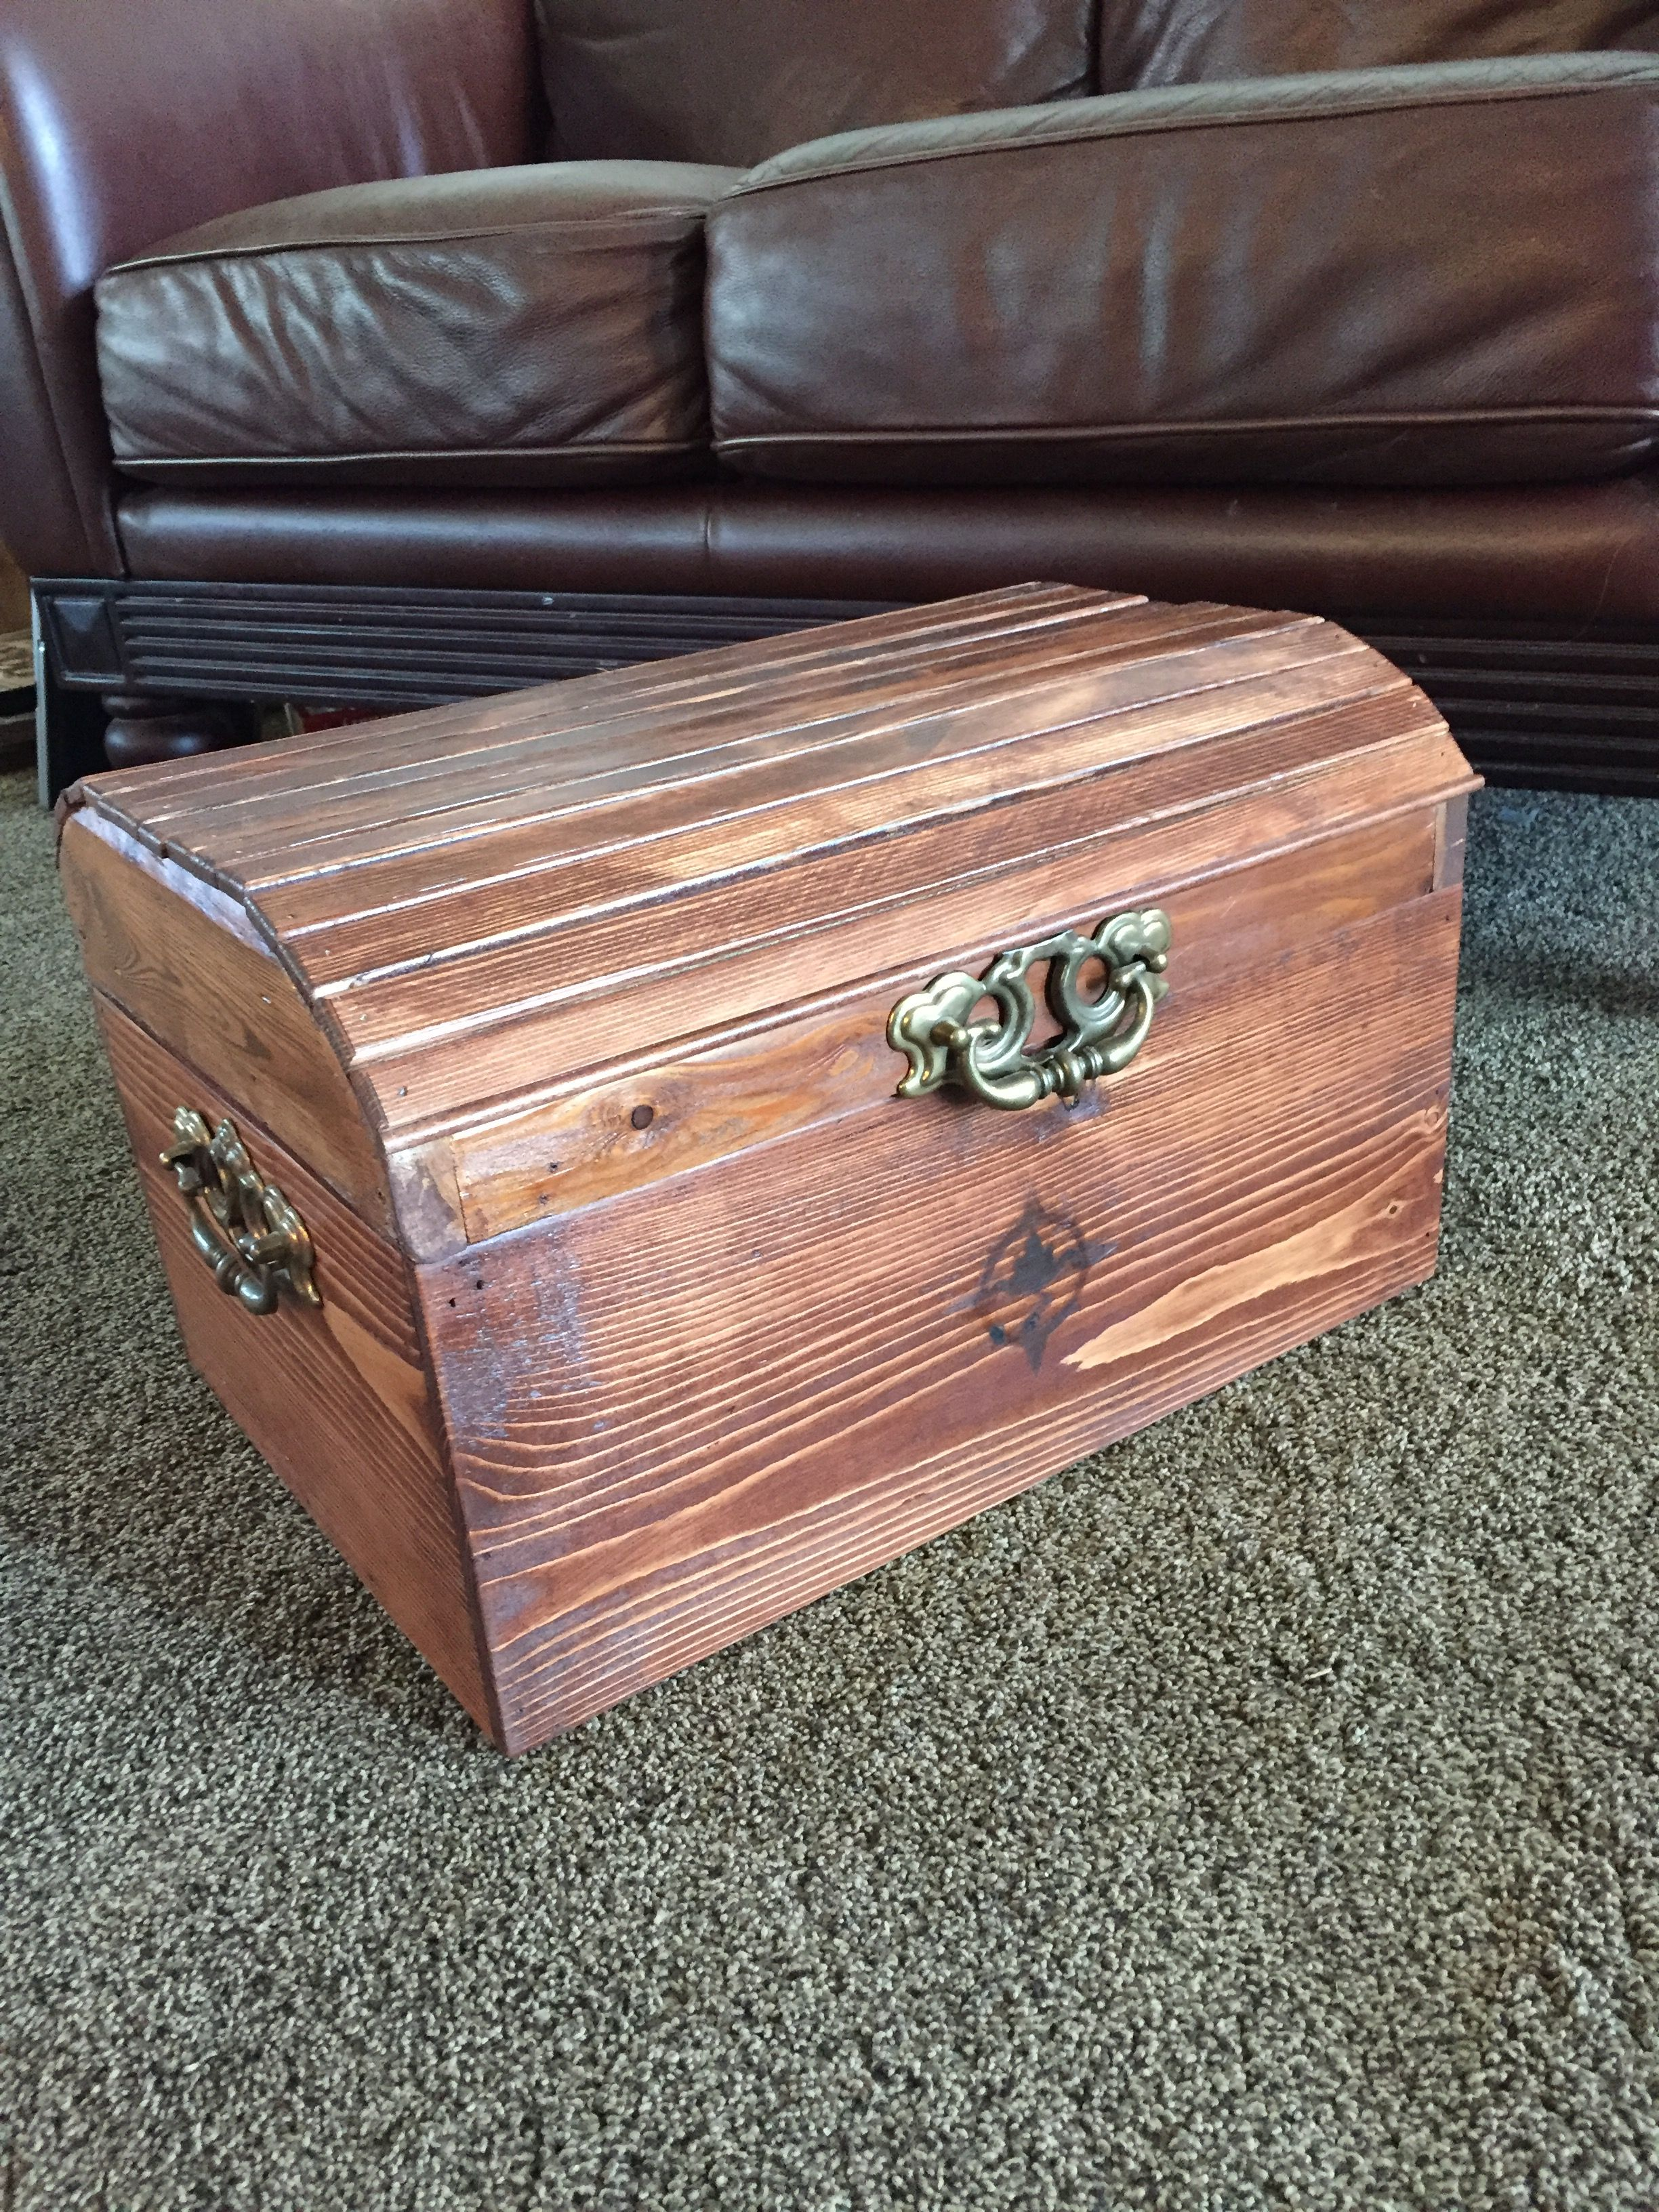 Treasure Chest for Girls' Camp Pallet building